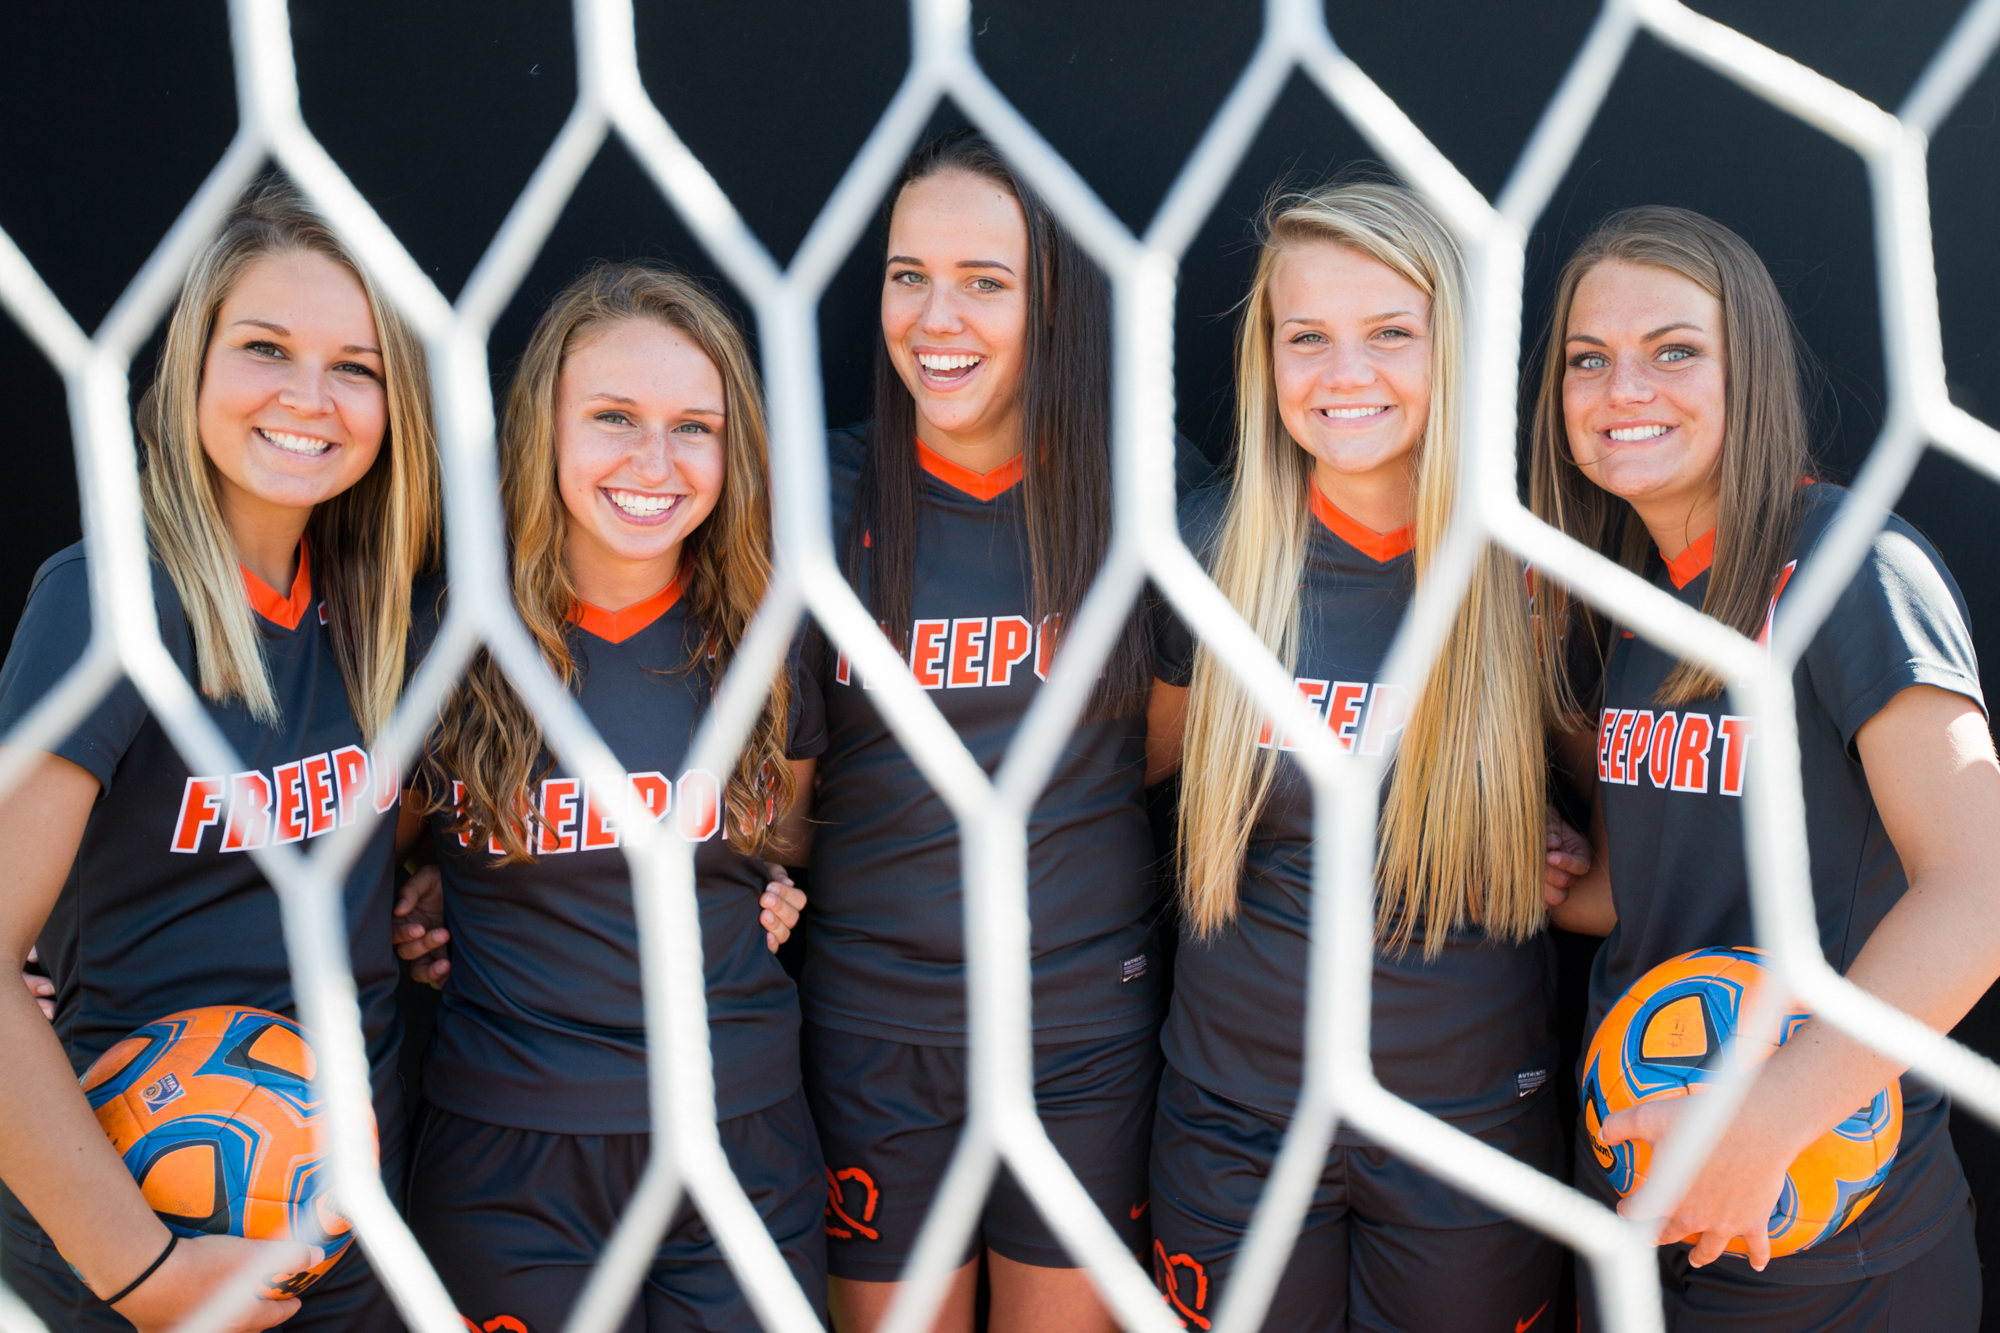 Freeport girls soccer seniors, from left, Montanna Stewart, Josie McDermott, Cassidy Grunewald, Ally Hasken, Sam Brooks,  and , who have all played varsity since they were freshmen, pose for a portrait on Wednesday, April 25, 2018, at the Freeport High School athletic field in Freeport. [SCOTT P. YATES/THE JOURNAL-STANDARD STAFF]